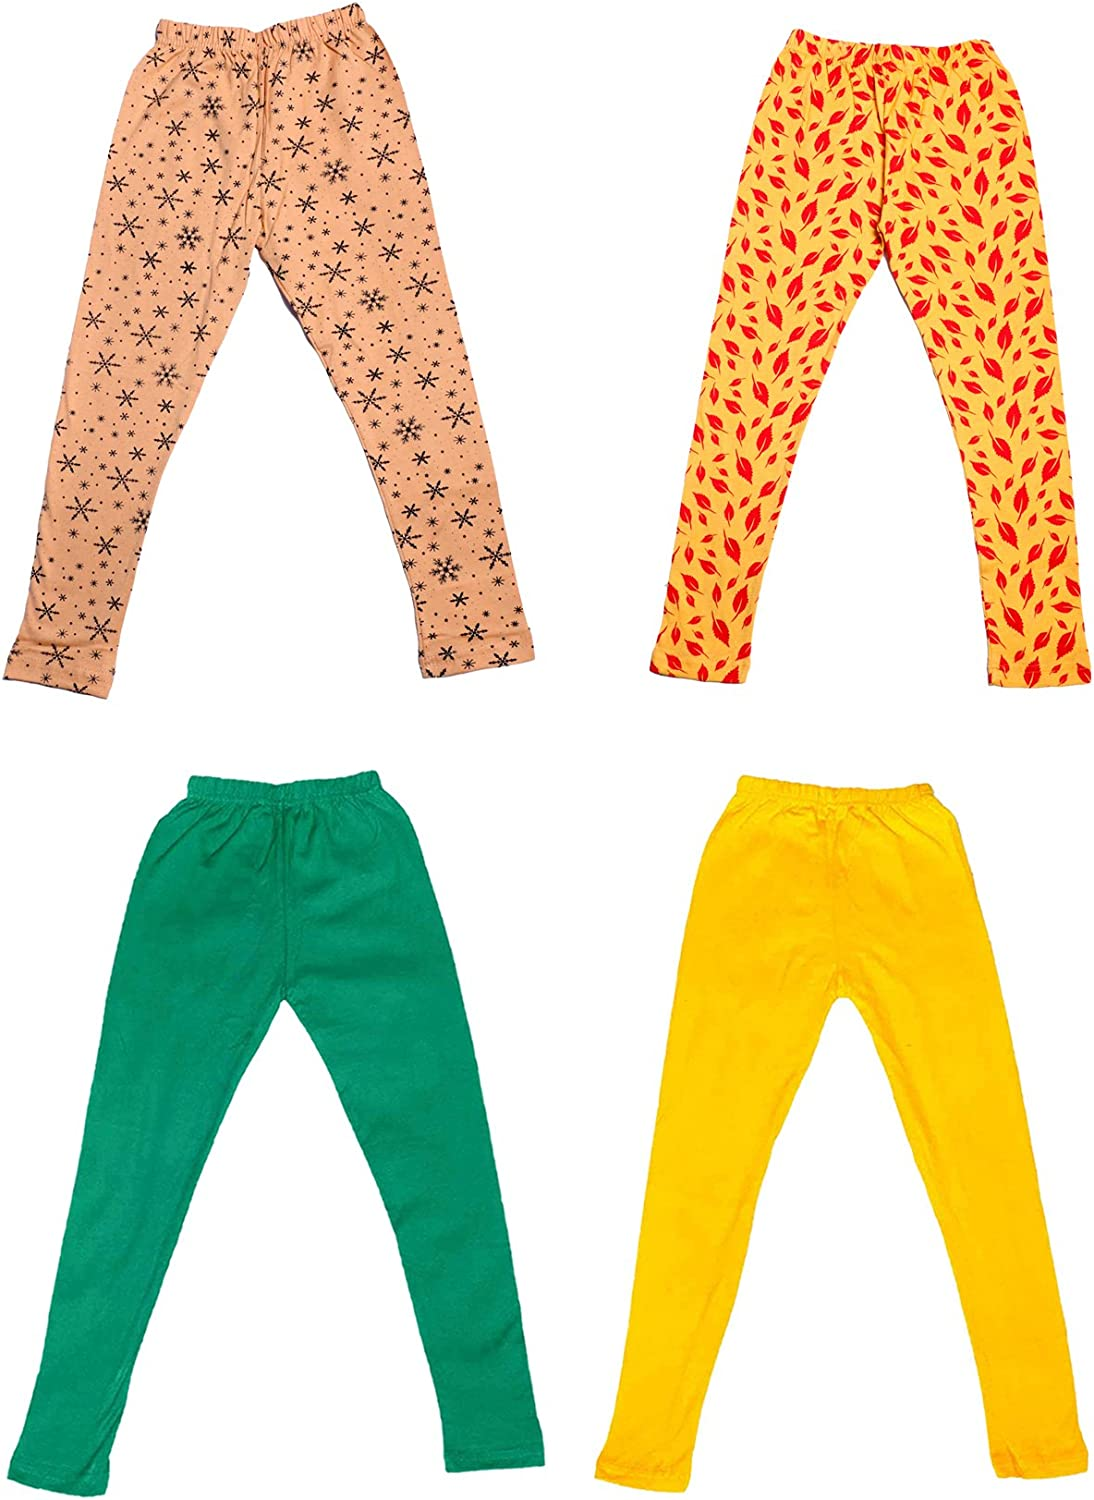 Pack Of 4 Indistar Girls 2 Cotton Solid Legging Pants and 2 Cotton Printed Legging Pants /_Multicolor/_Size-9-10 Years/_71406071819-IW-P4-32